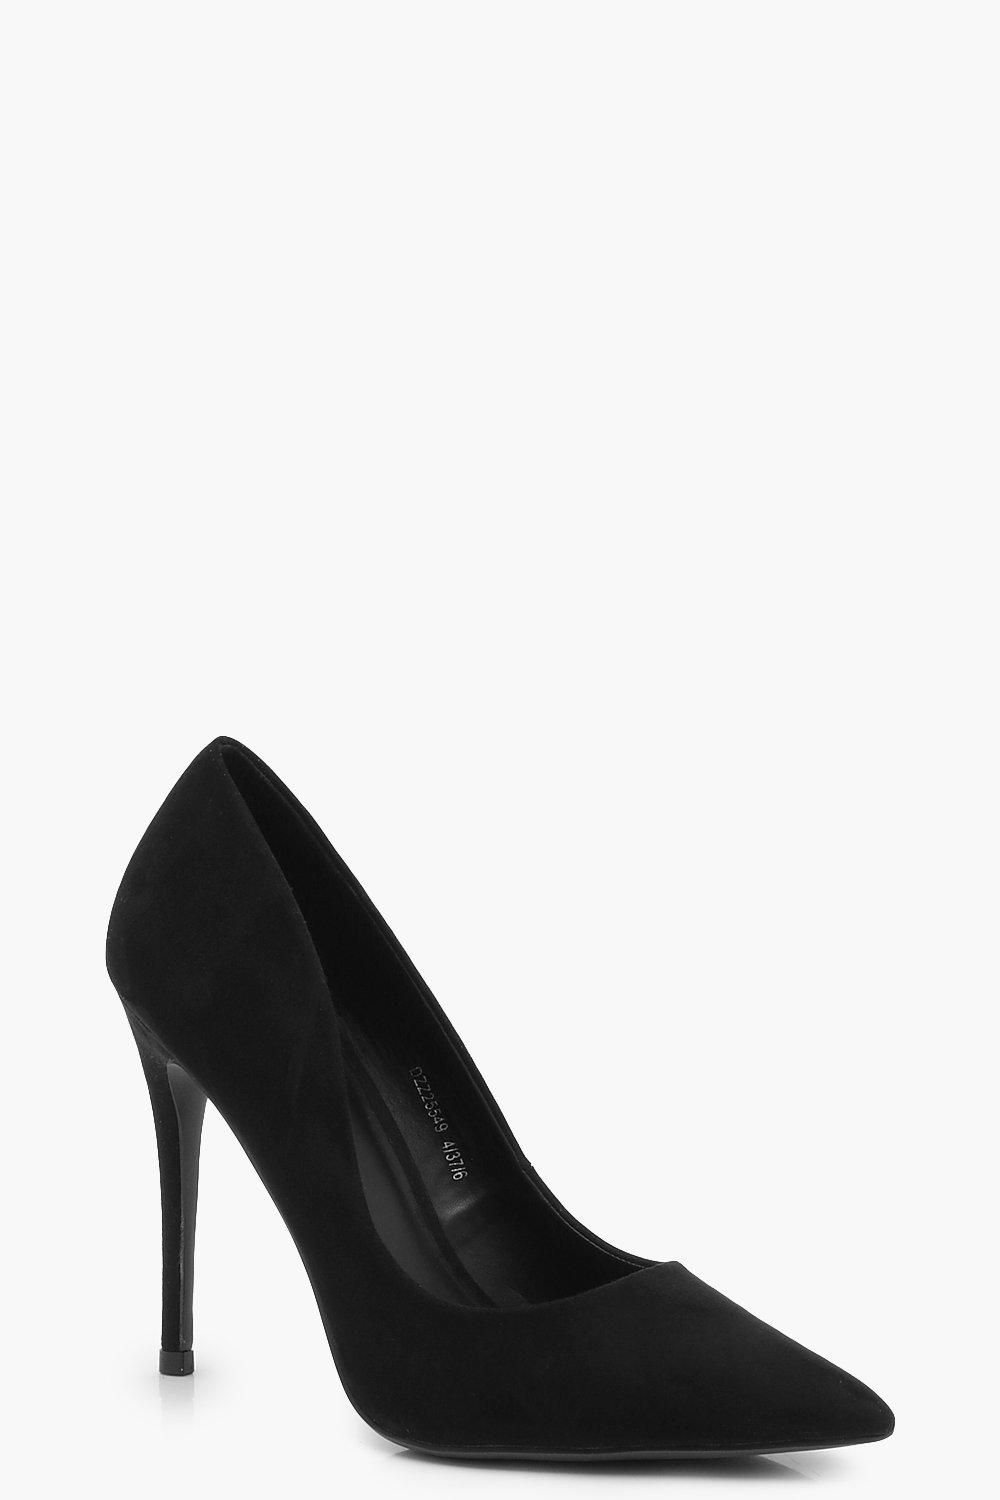 e0640ec217 Click here to find out about the Pointed Toe Court Shoes from Boohoo, part  of our latest High Heels collection ready to shop online today!